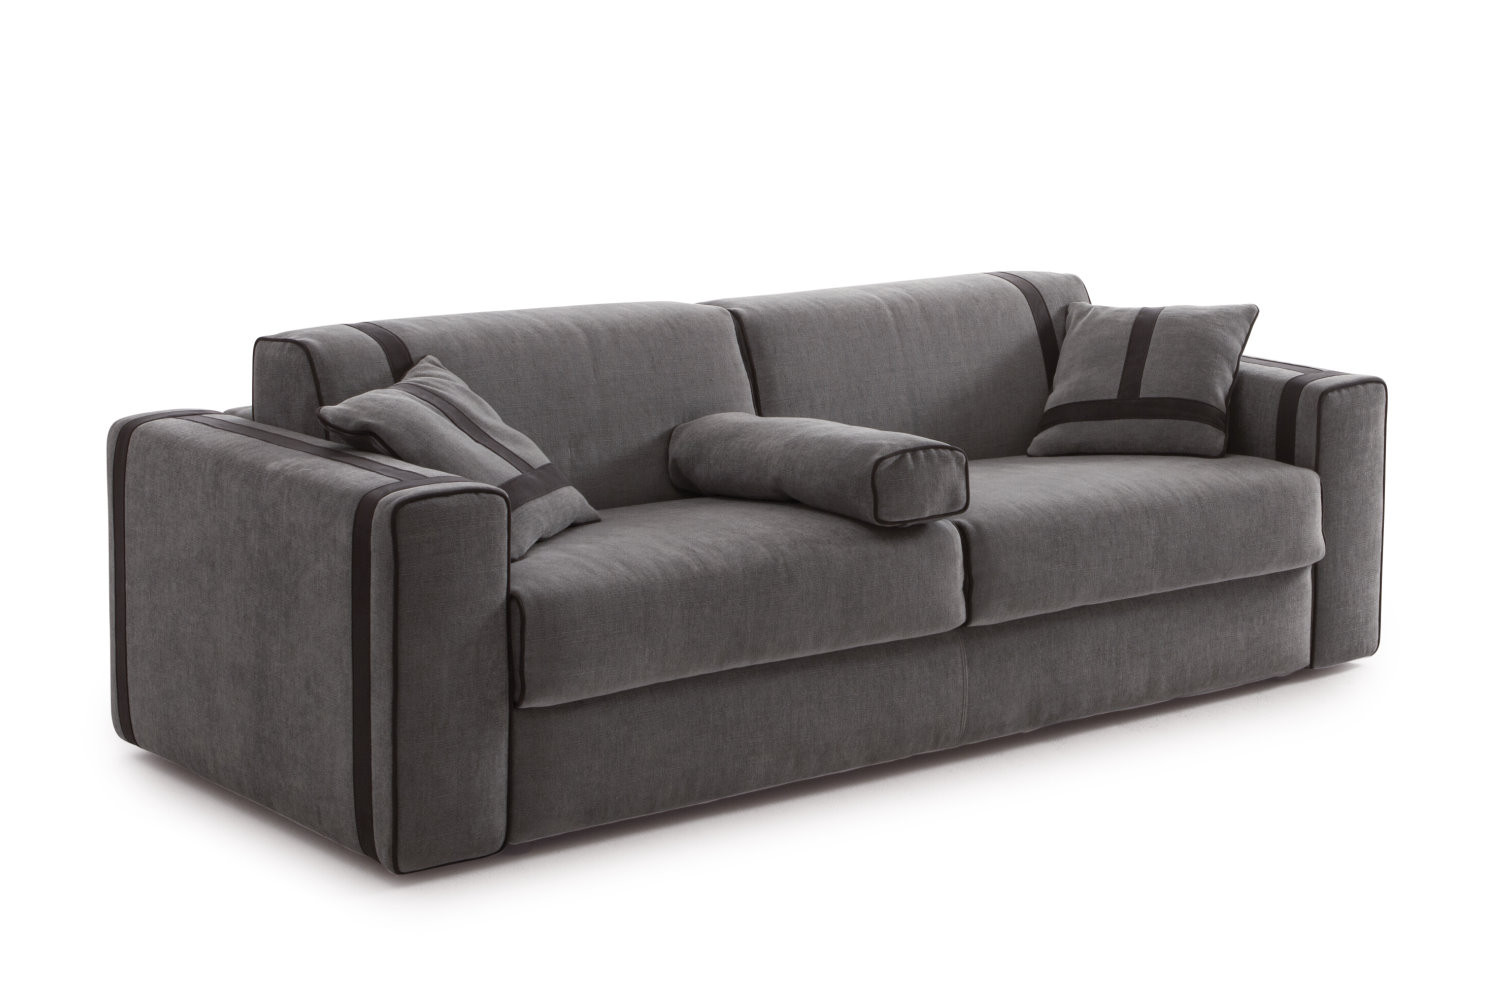 canap lit couchage quotidien ellington